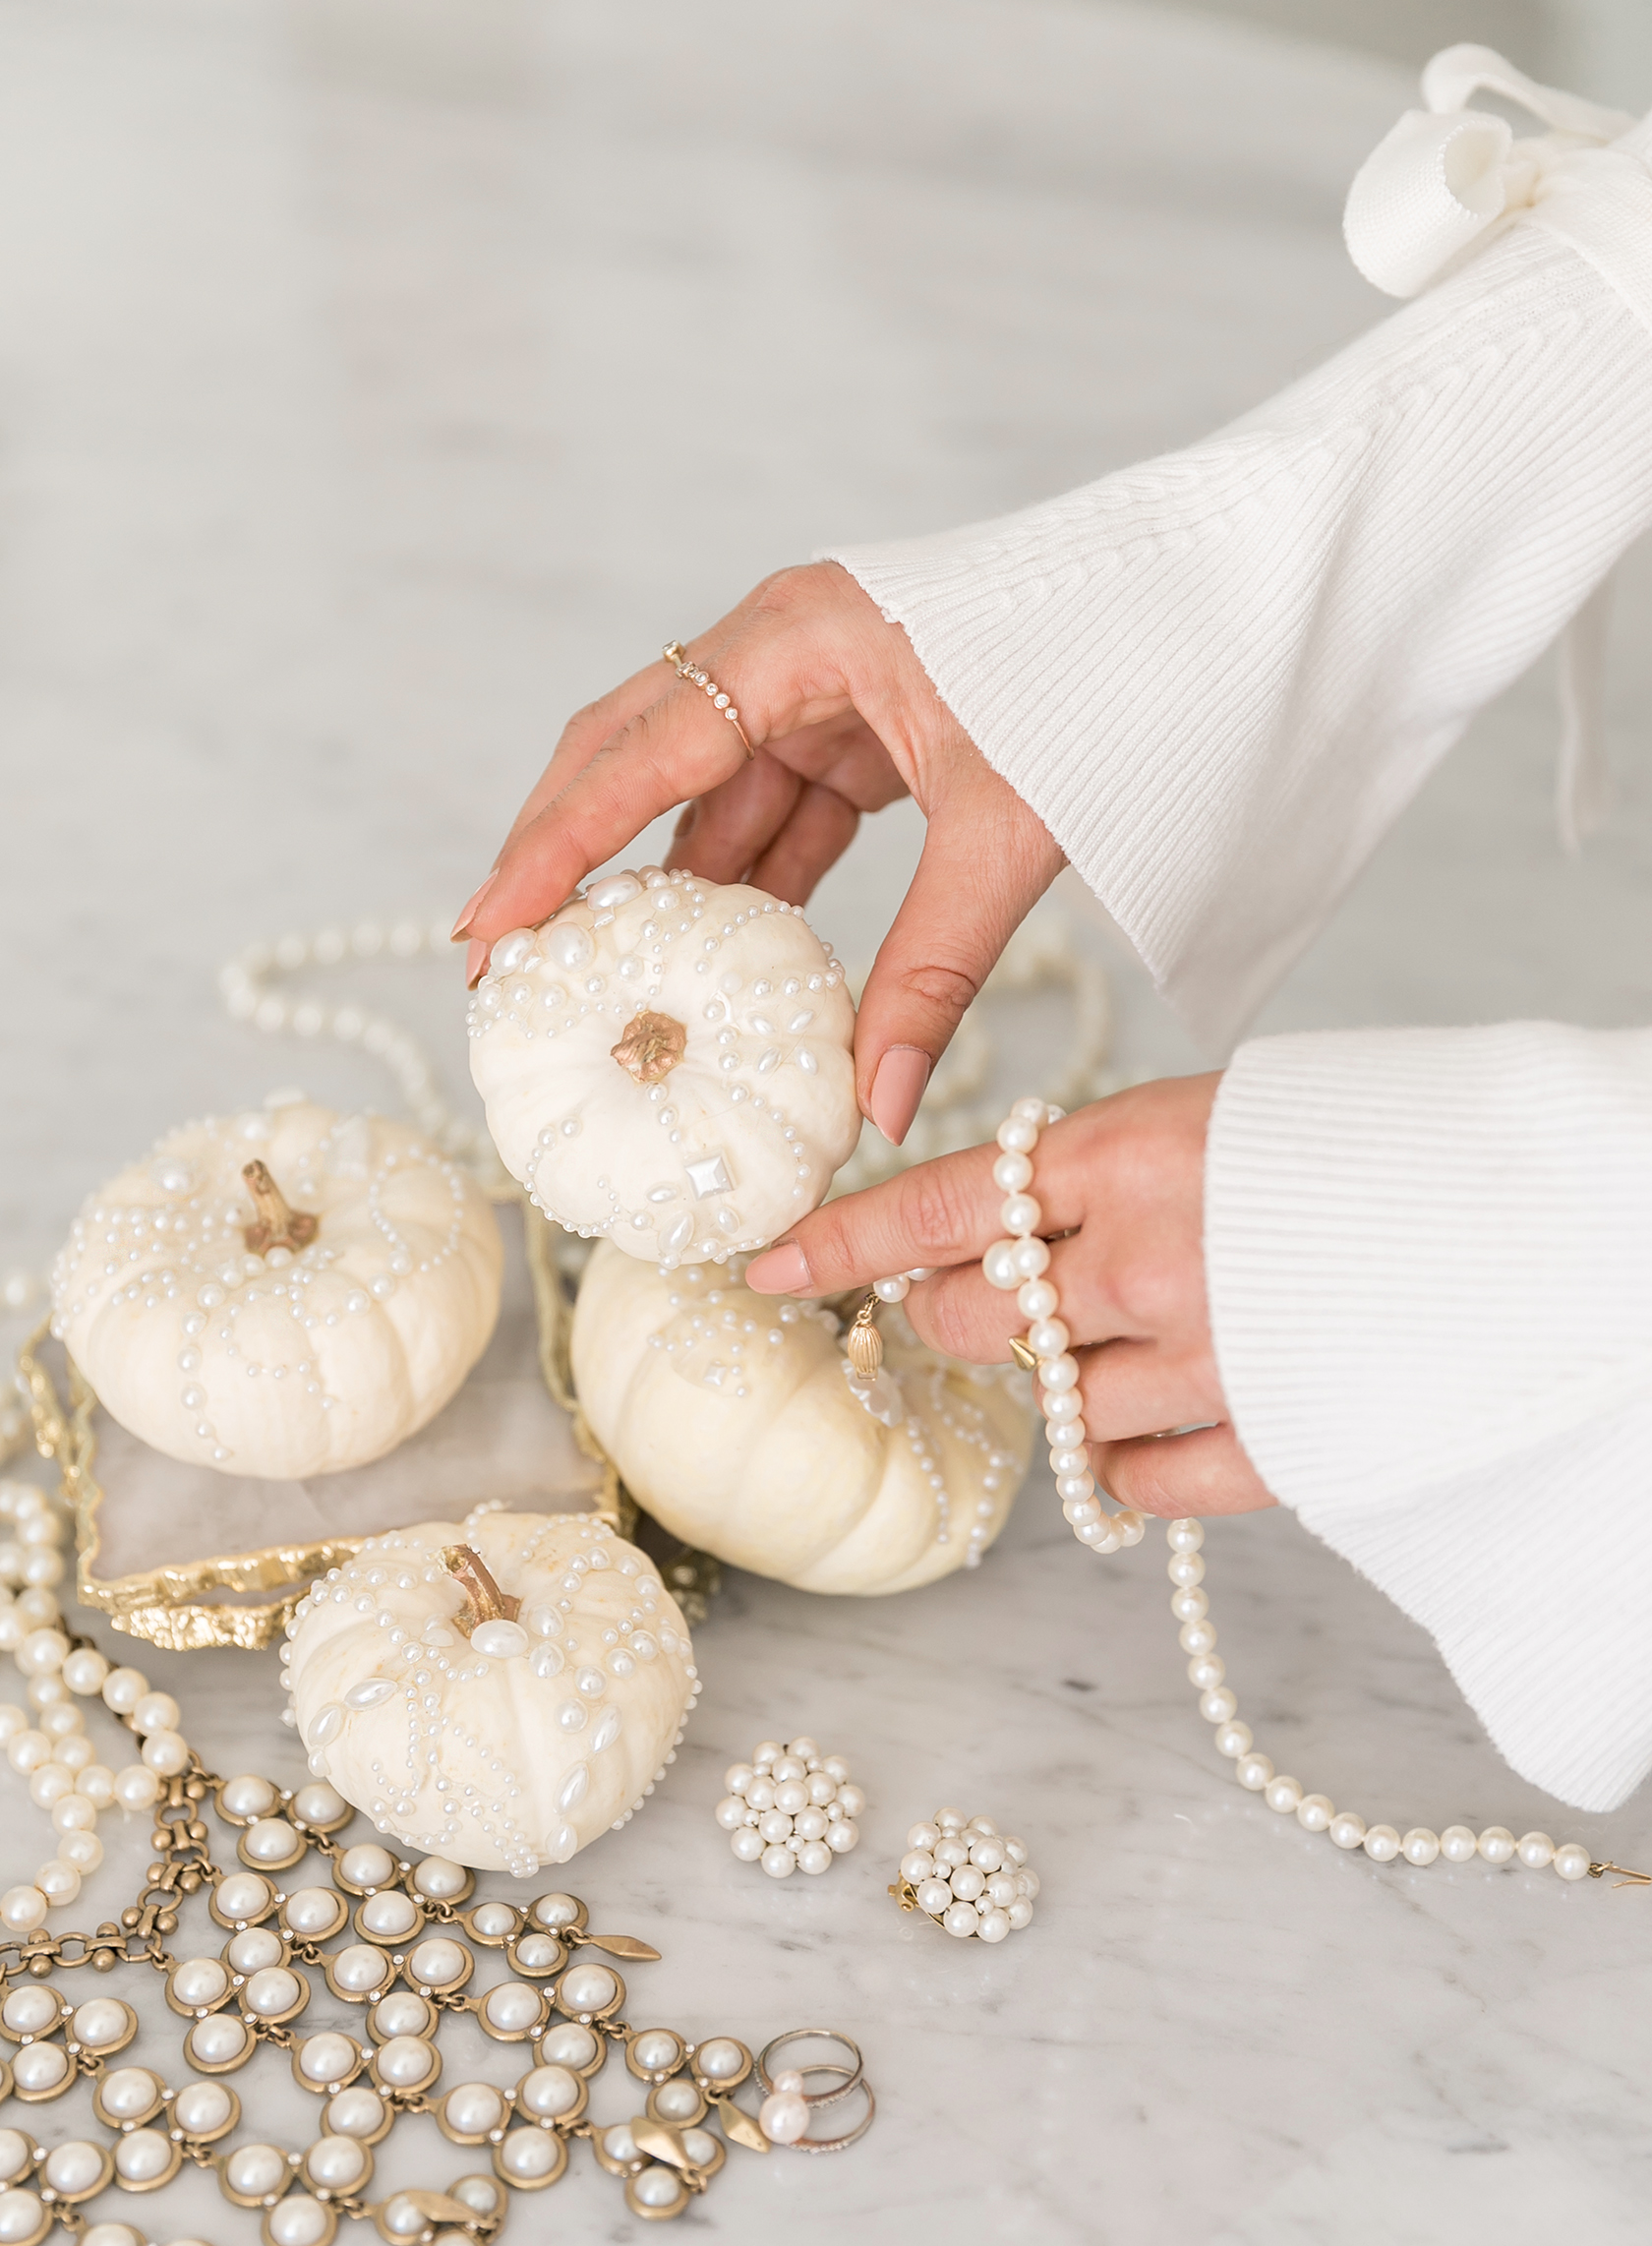 Sydne Style shows diy pearl pumpkins for chic halloween decor